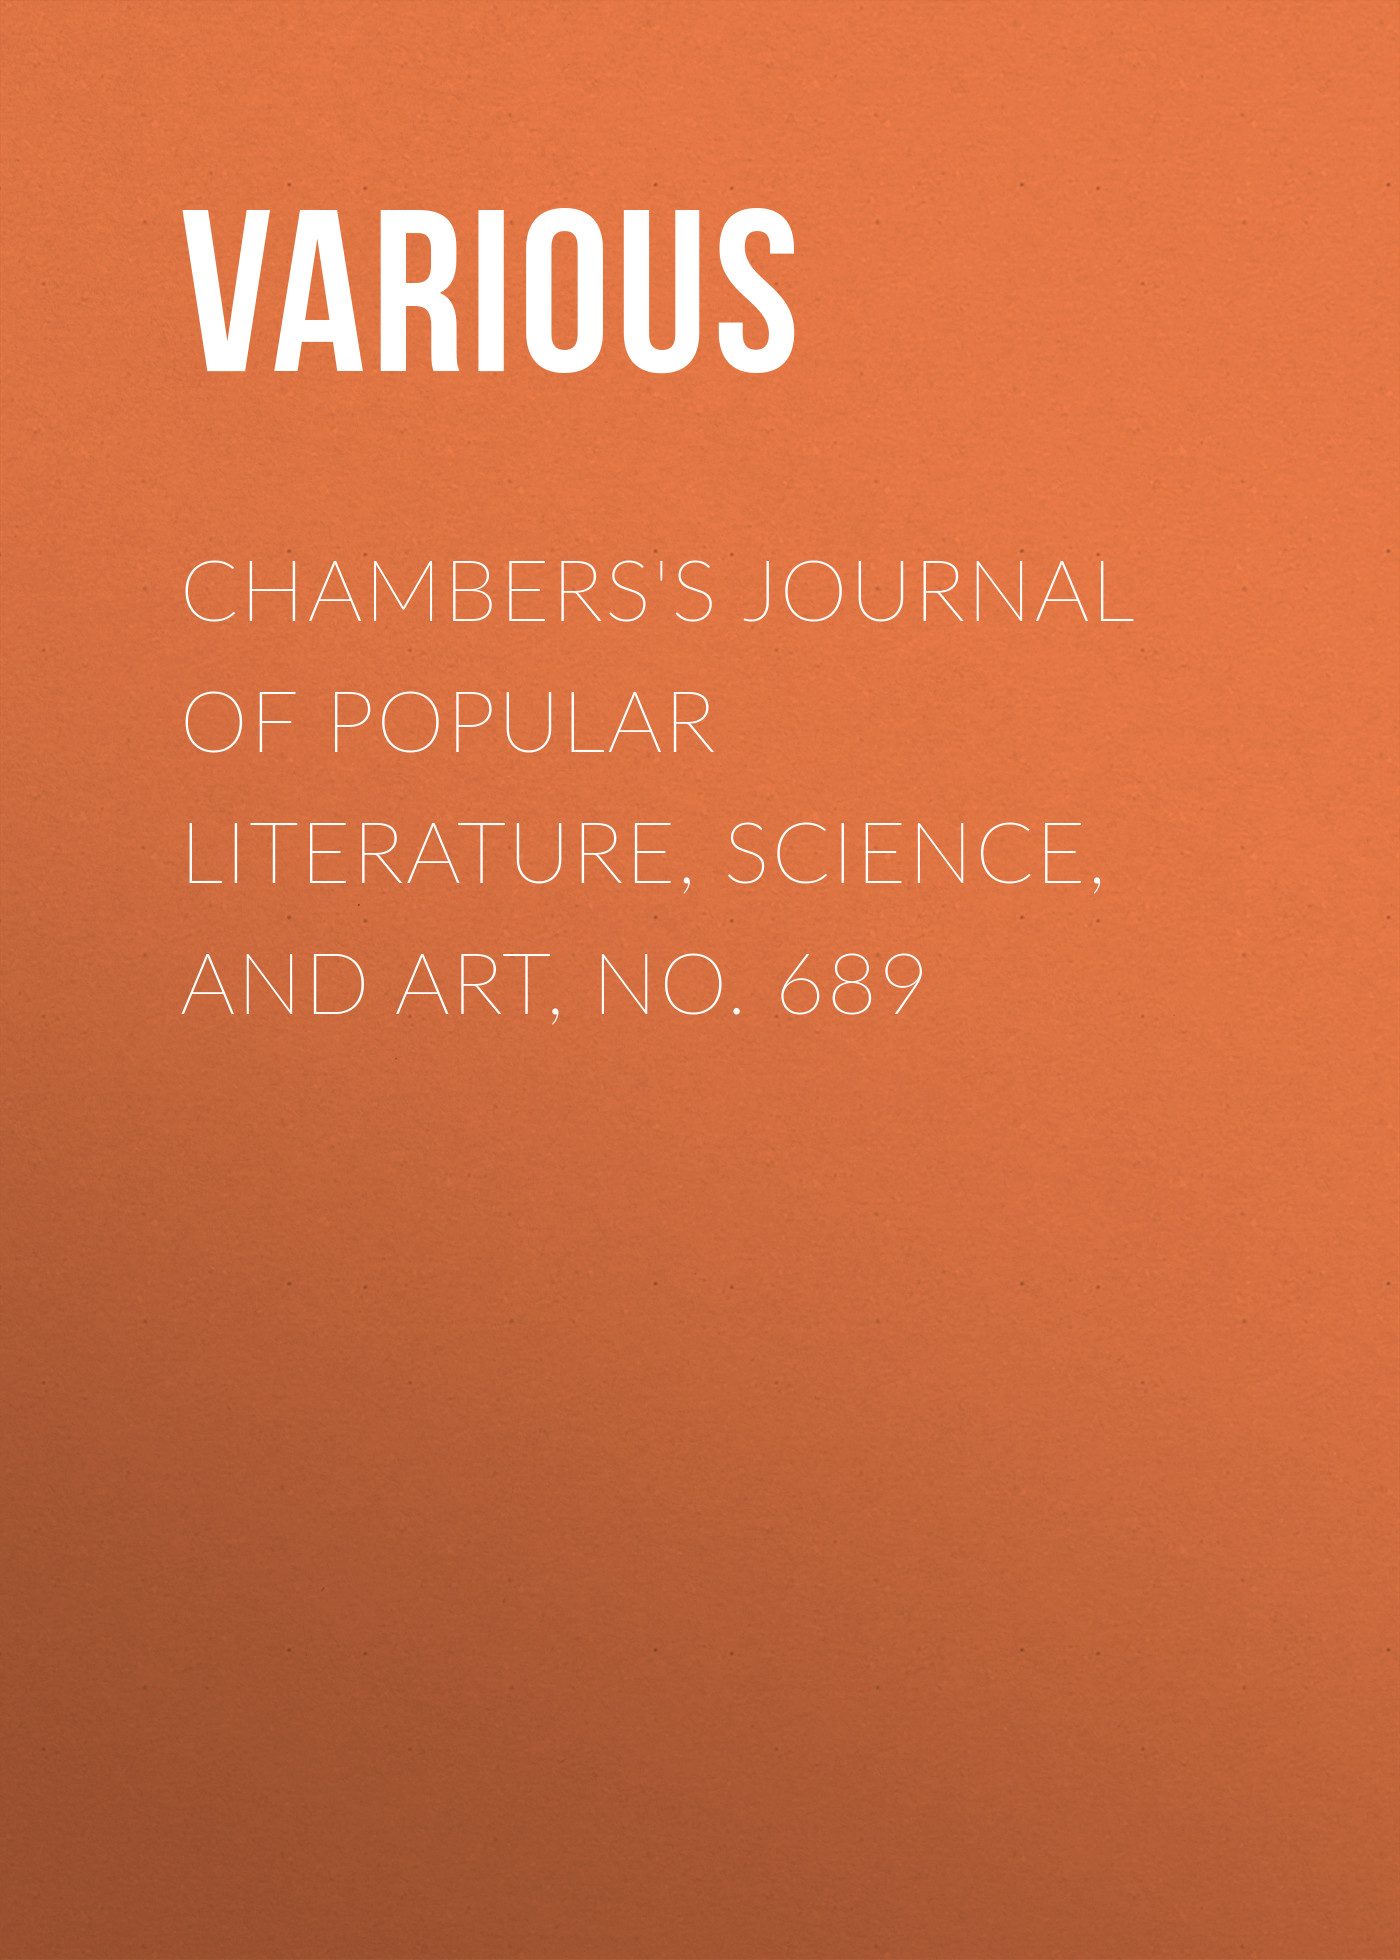 Chambers's Journal of Popular Literature, Science, and Art, No. 689